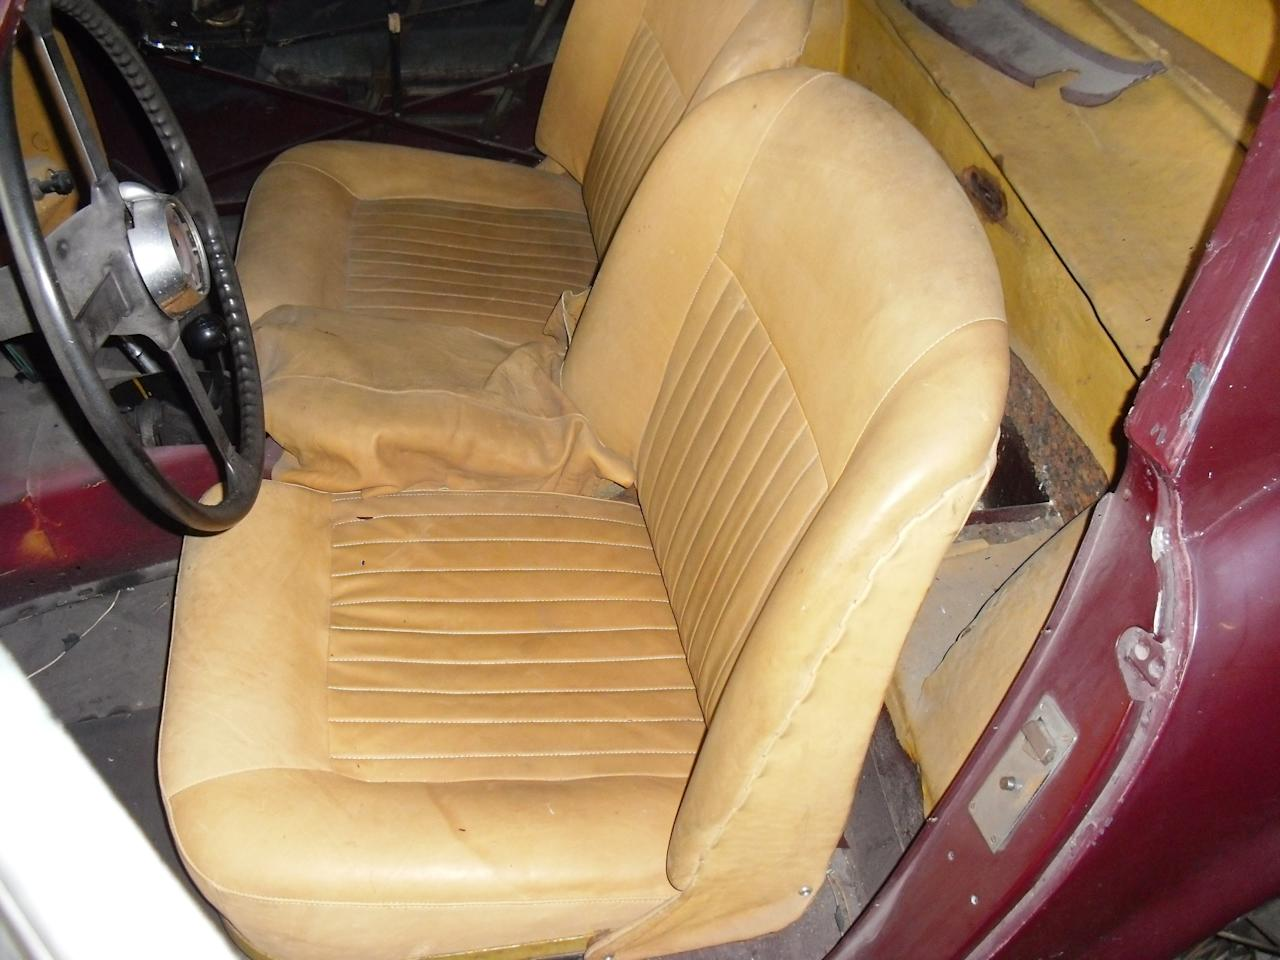 <p>The Jaguar was in pretty poor shape, as can be seen by the tired and rather battered seats. </p>